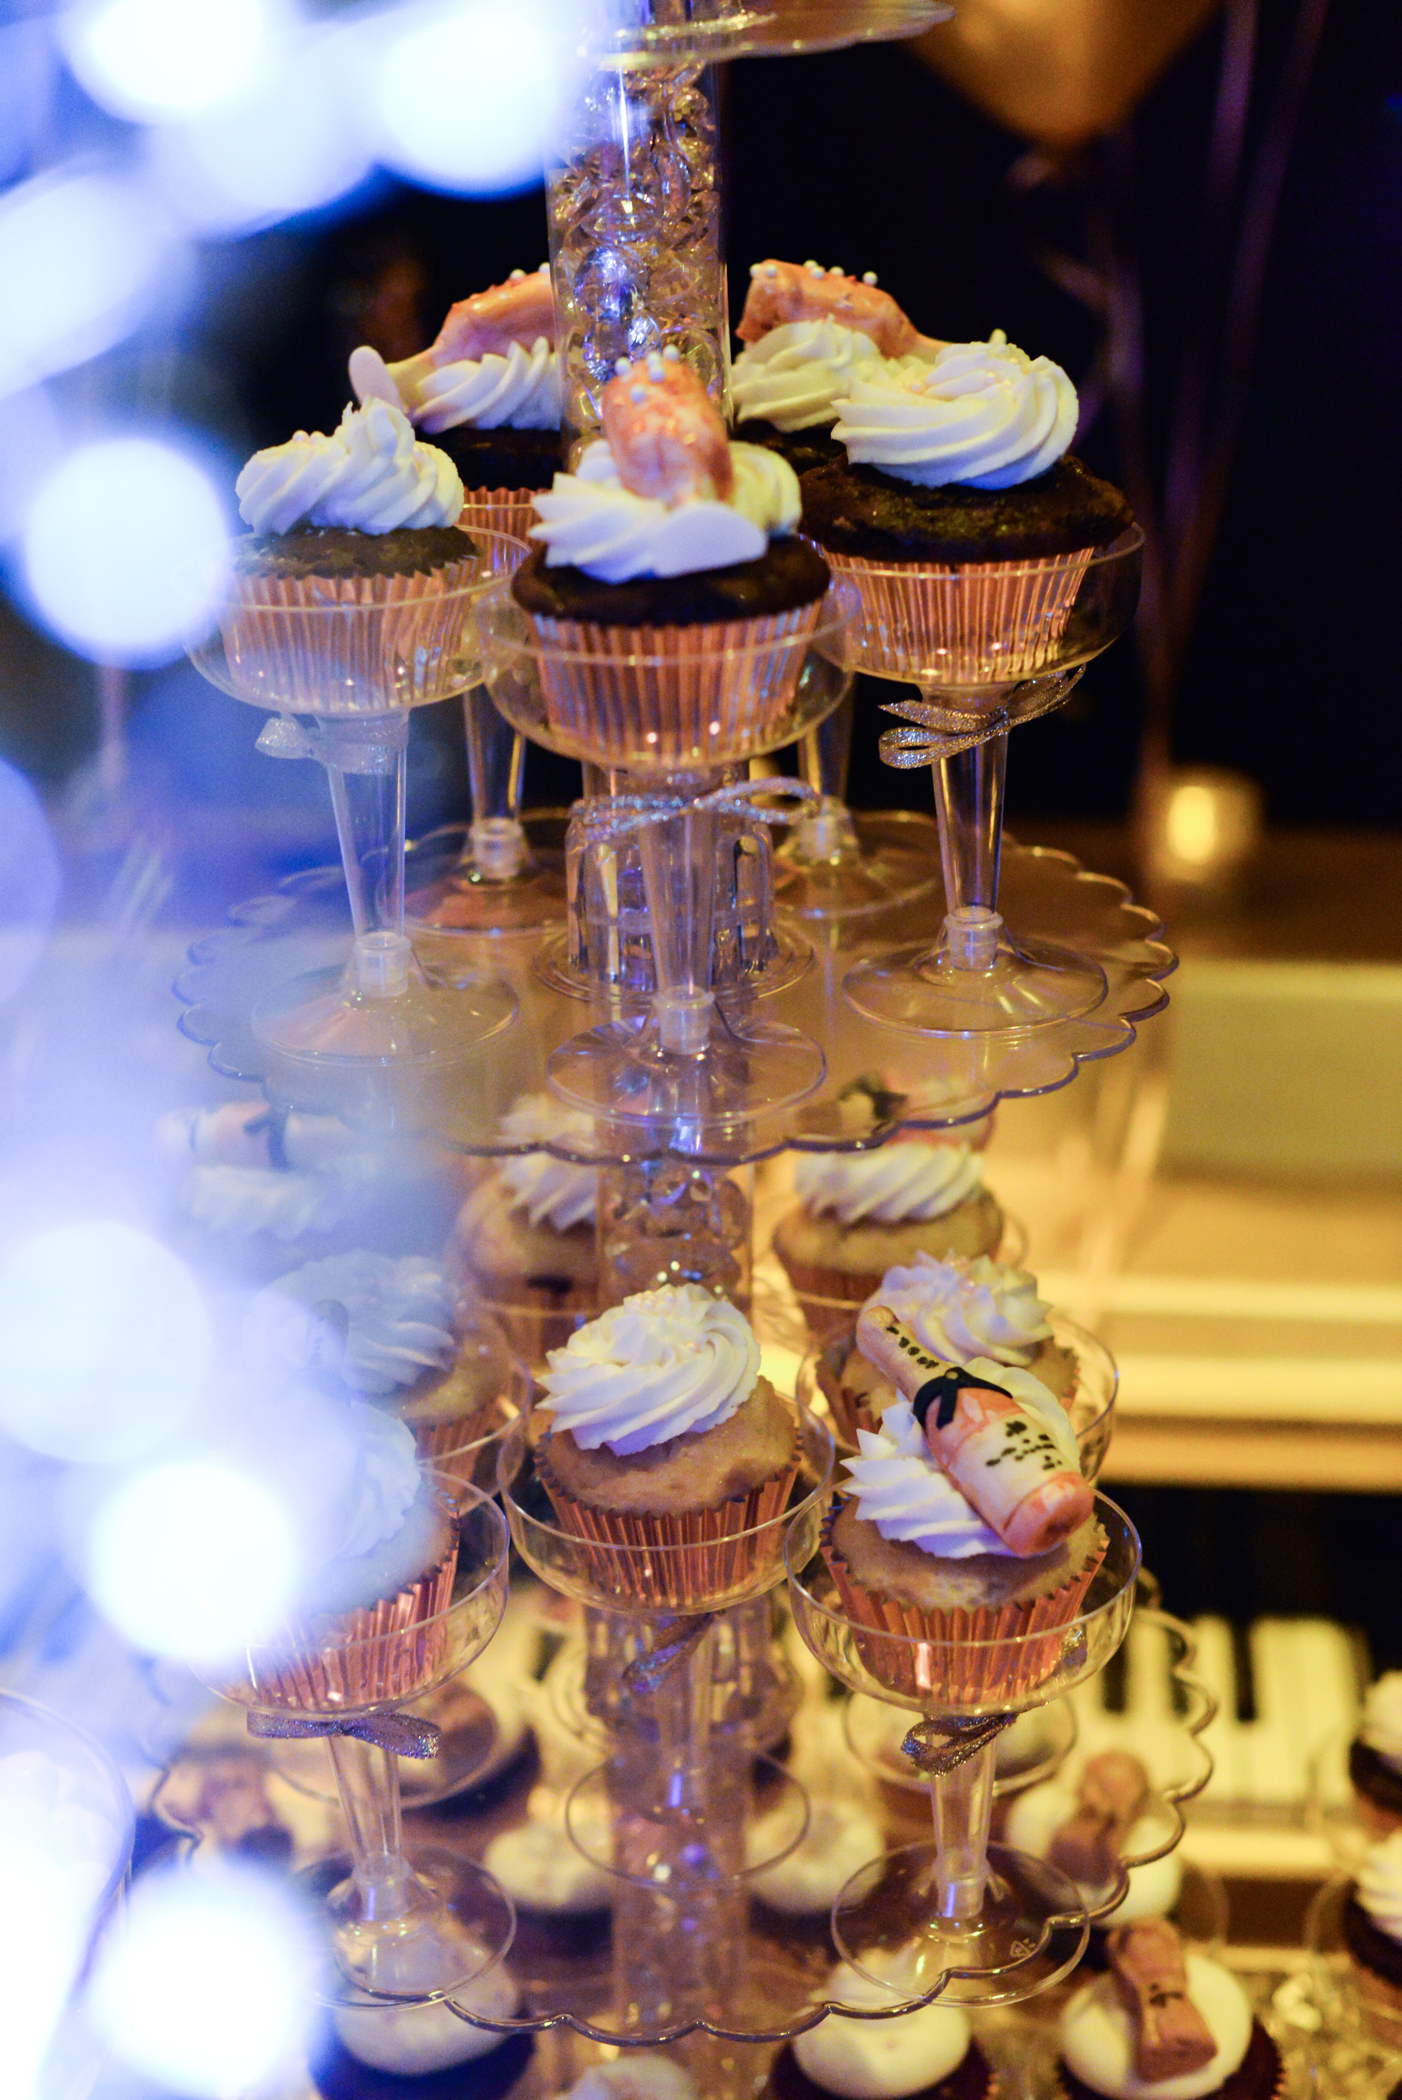 Champagne Party Details Small-28.JPG